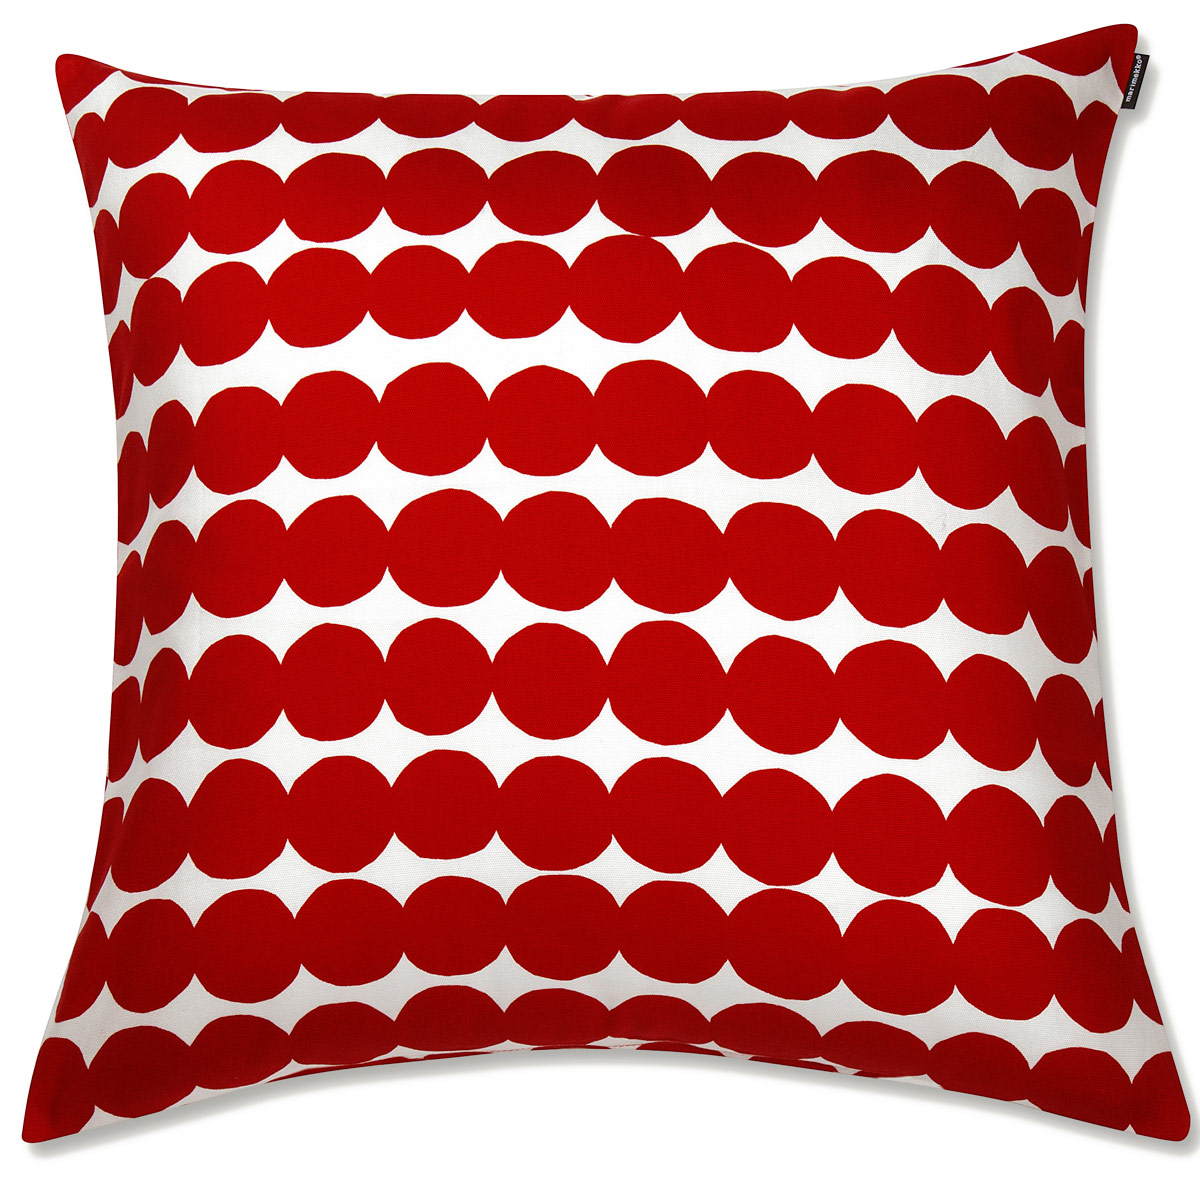 Check out our list of the best pillows of the year, plus how to choose the best one for you. Marimekko Rasymatto Red / White Throw Pillow - Throw Pillows